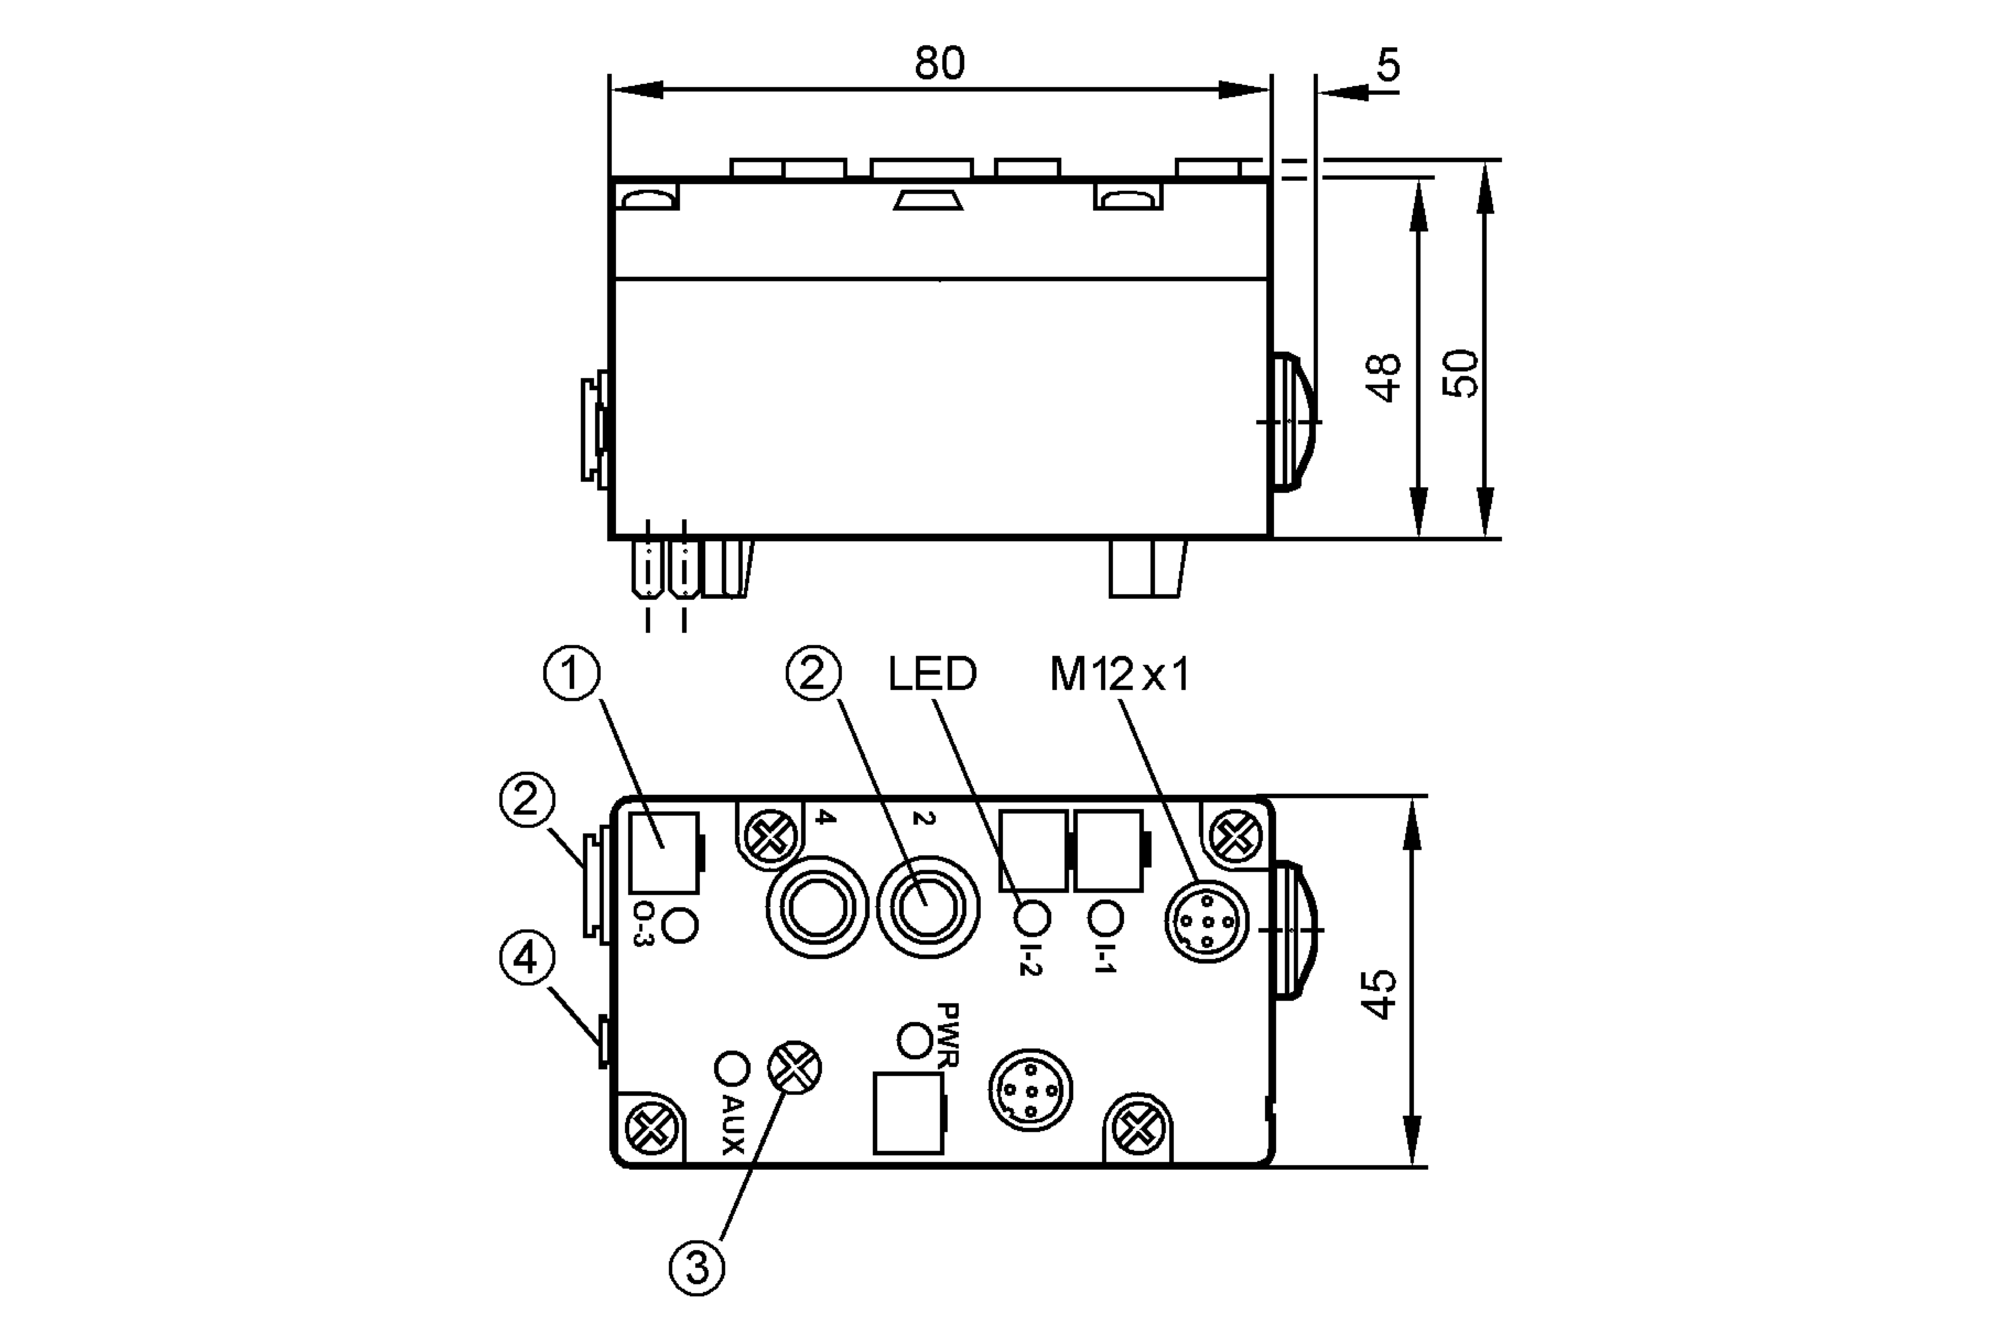 ac2048 - as-interface airbox